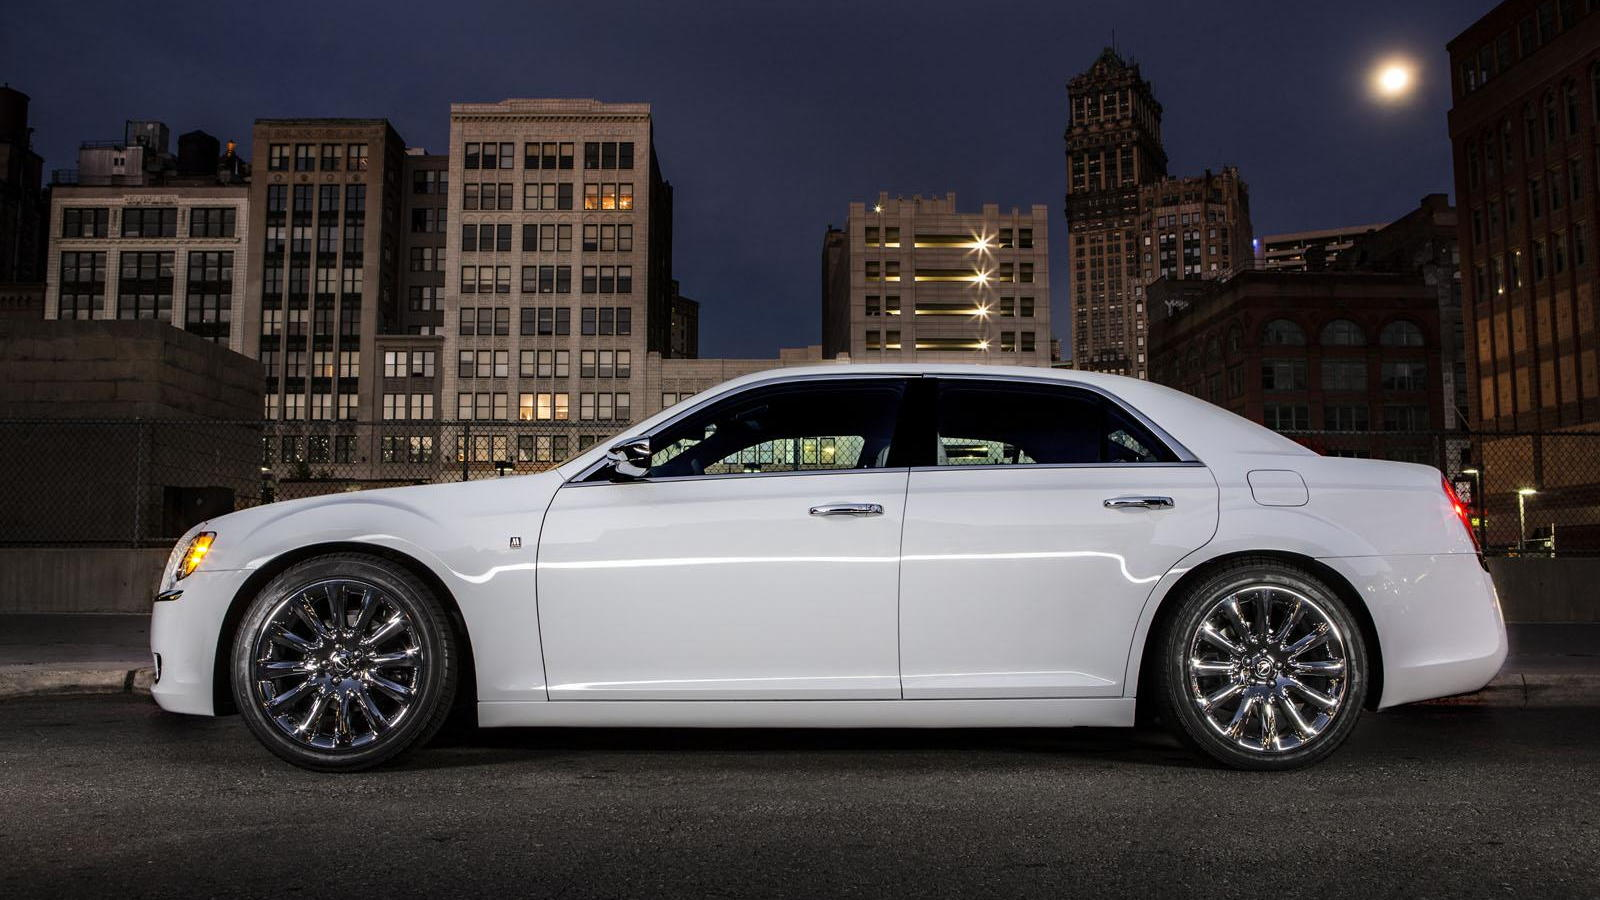 hight resolution of 2013 chrysler 300 motown edition